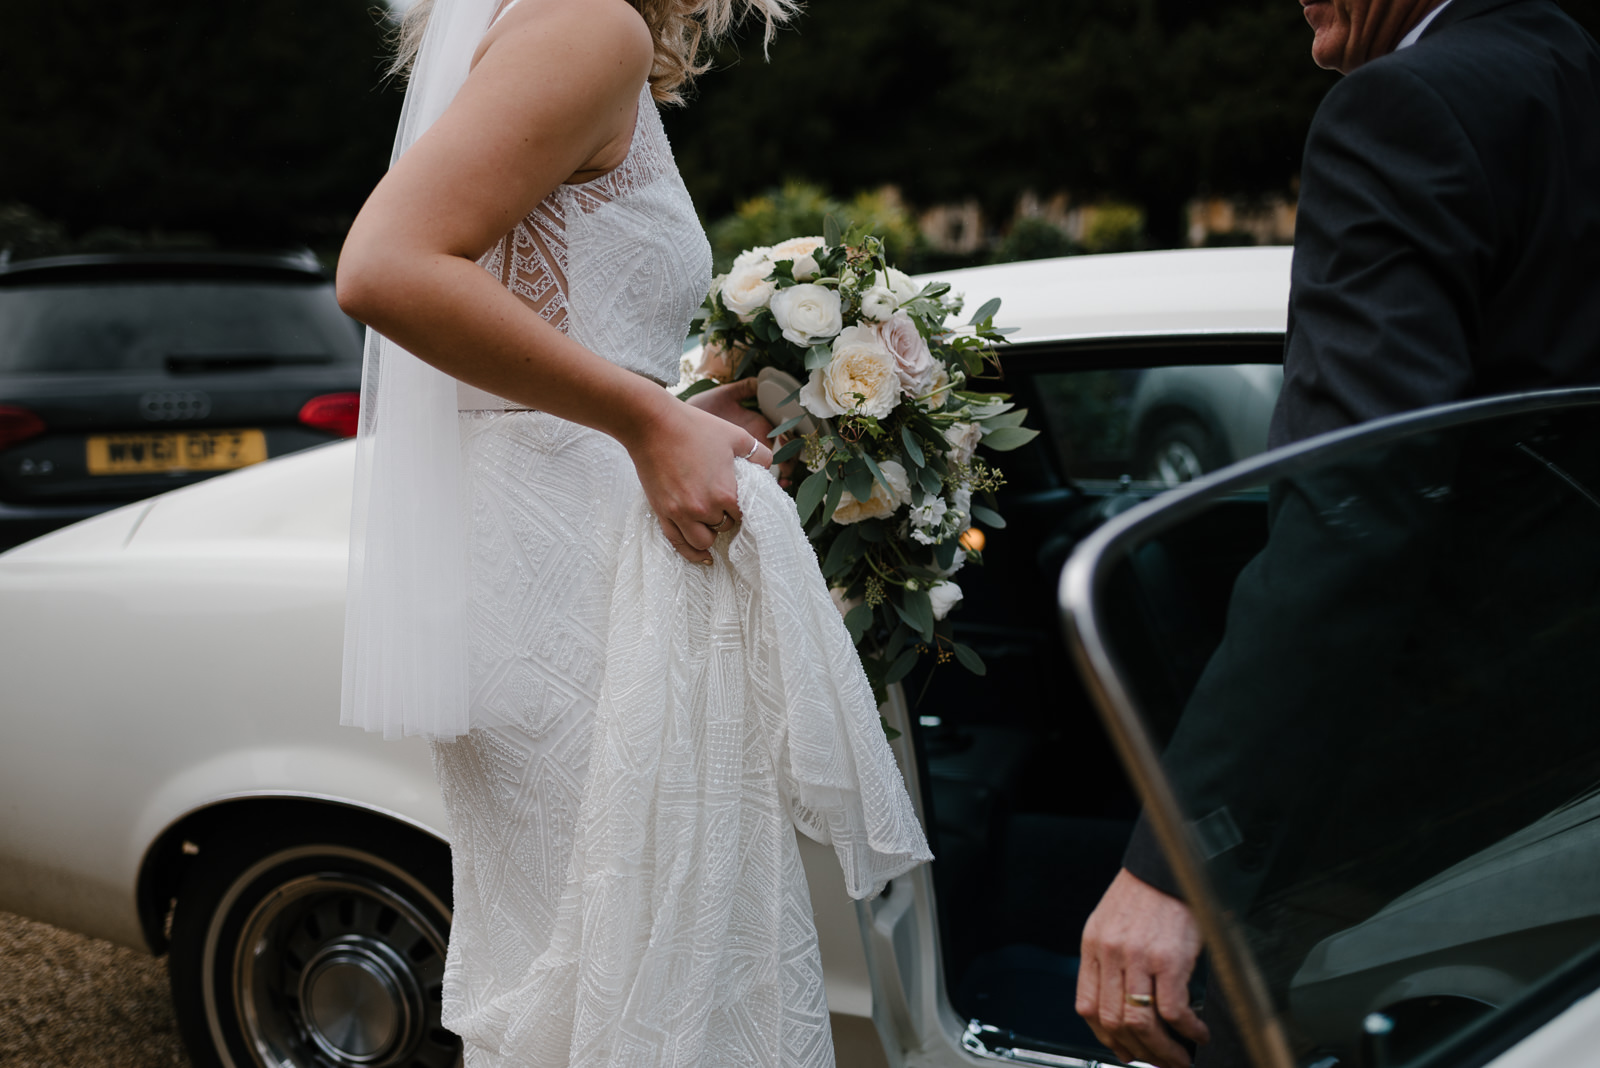 bride getting into her vintage mustang wedding car